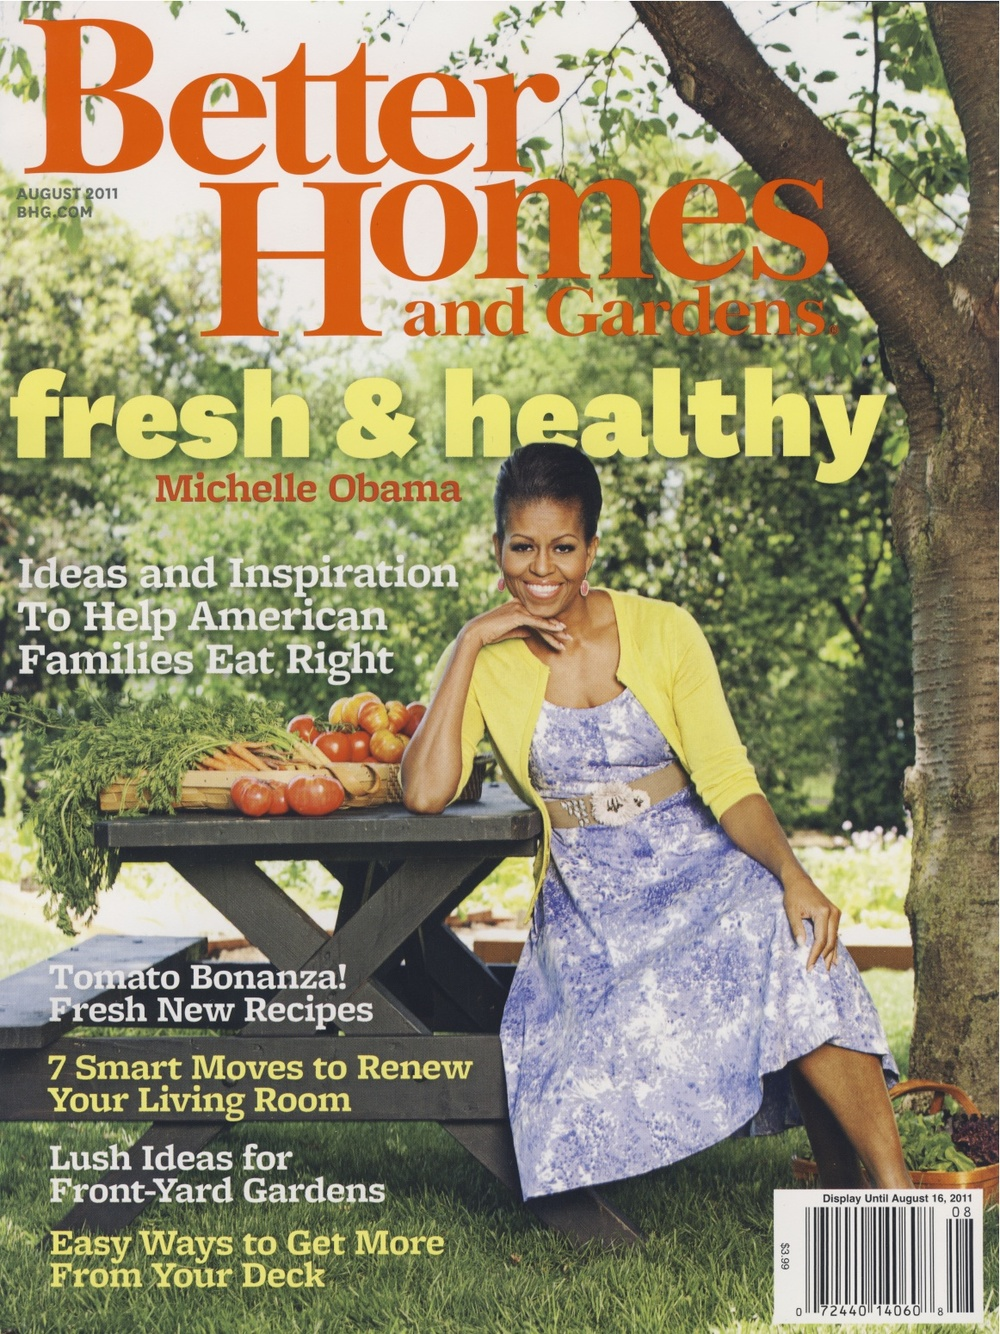 BHG Cover Aug 2011.jpg